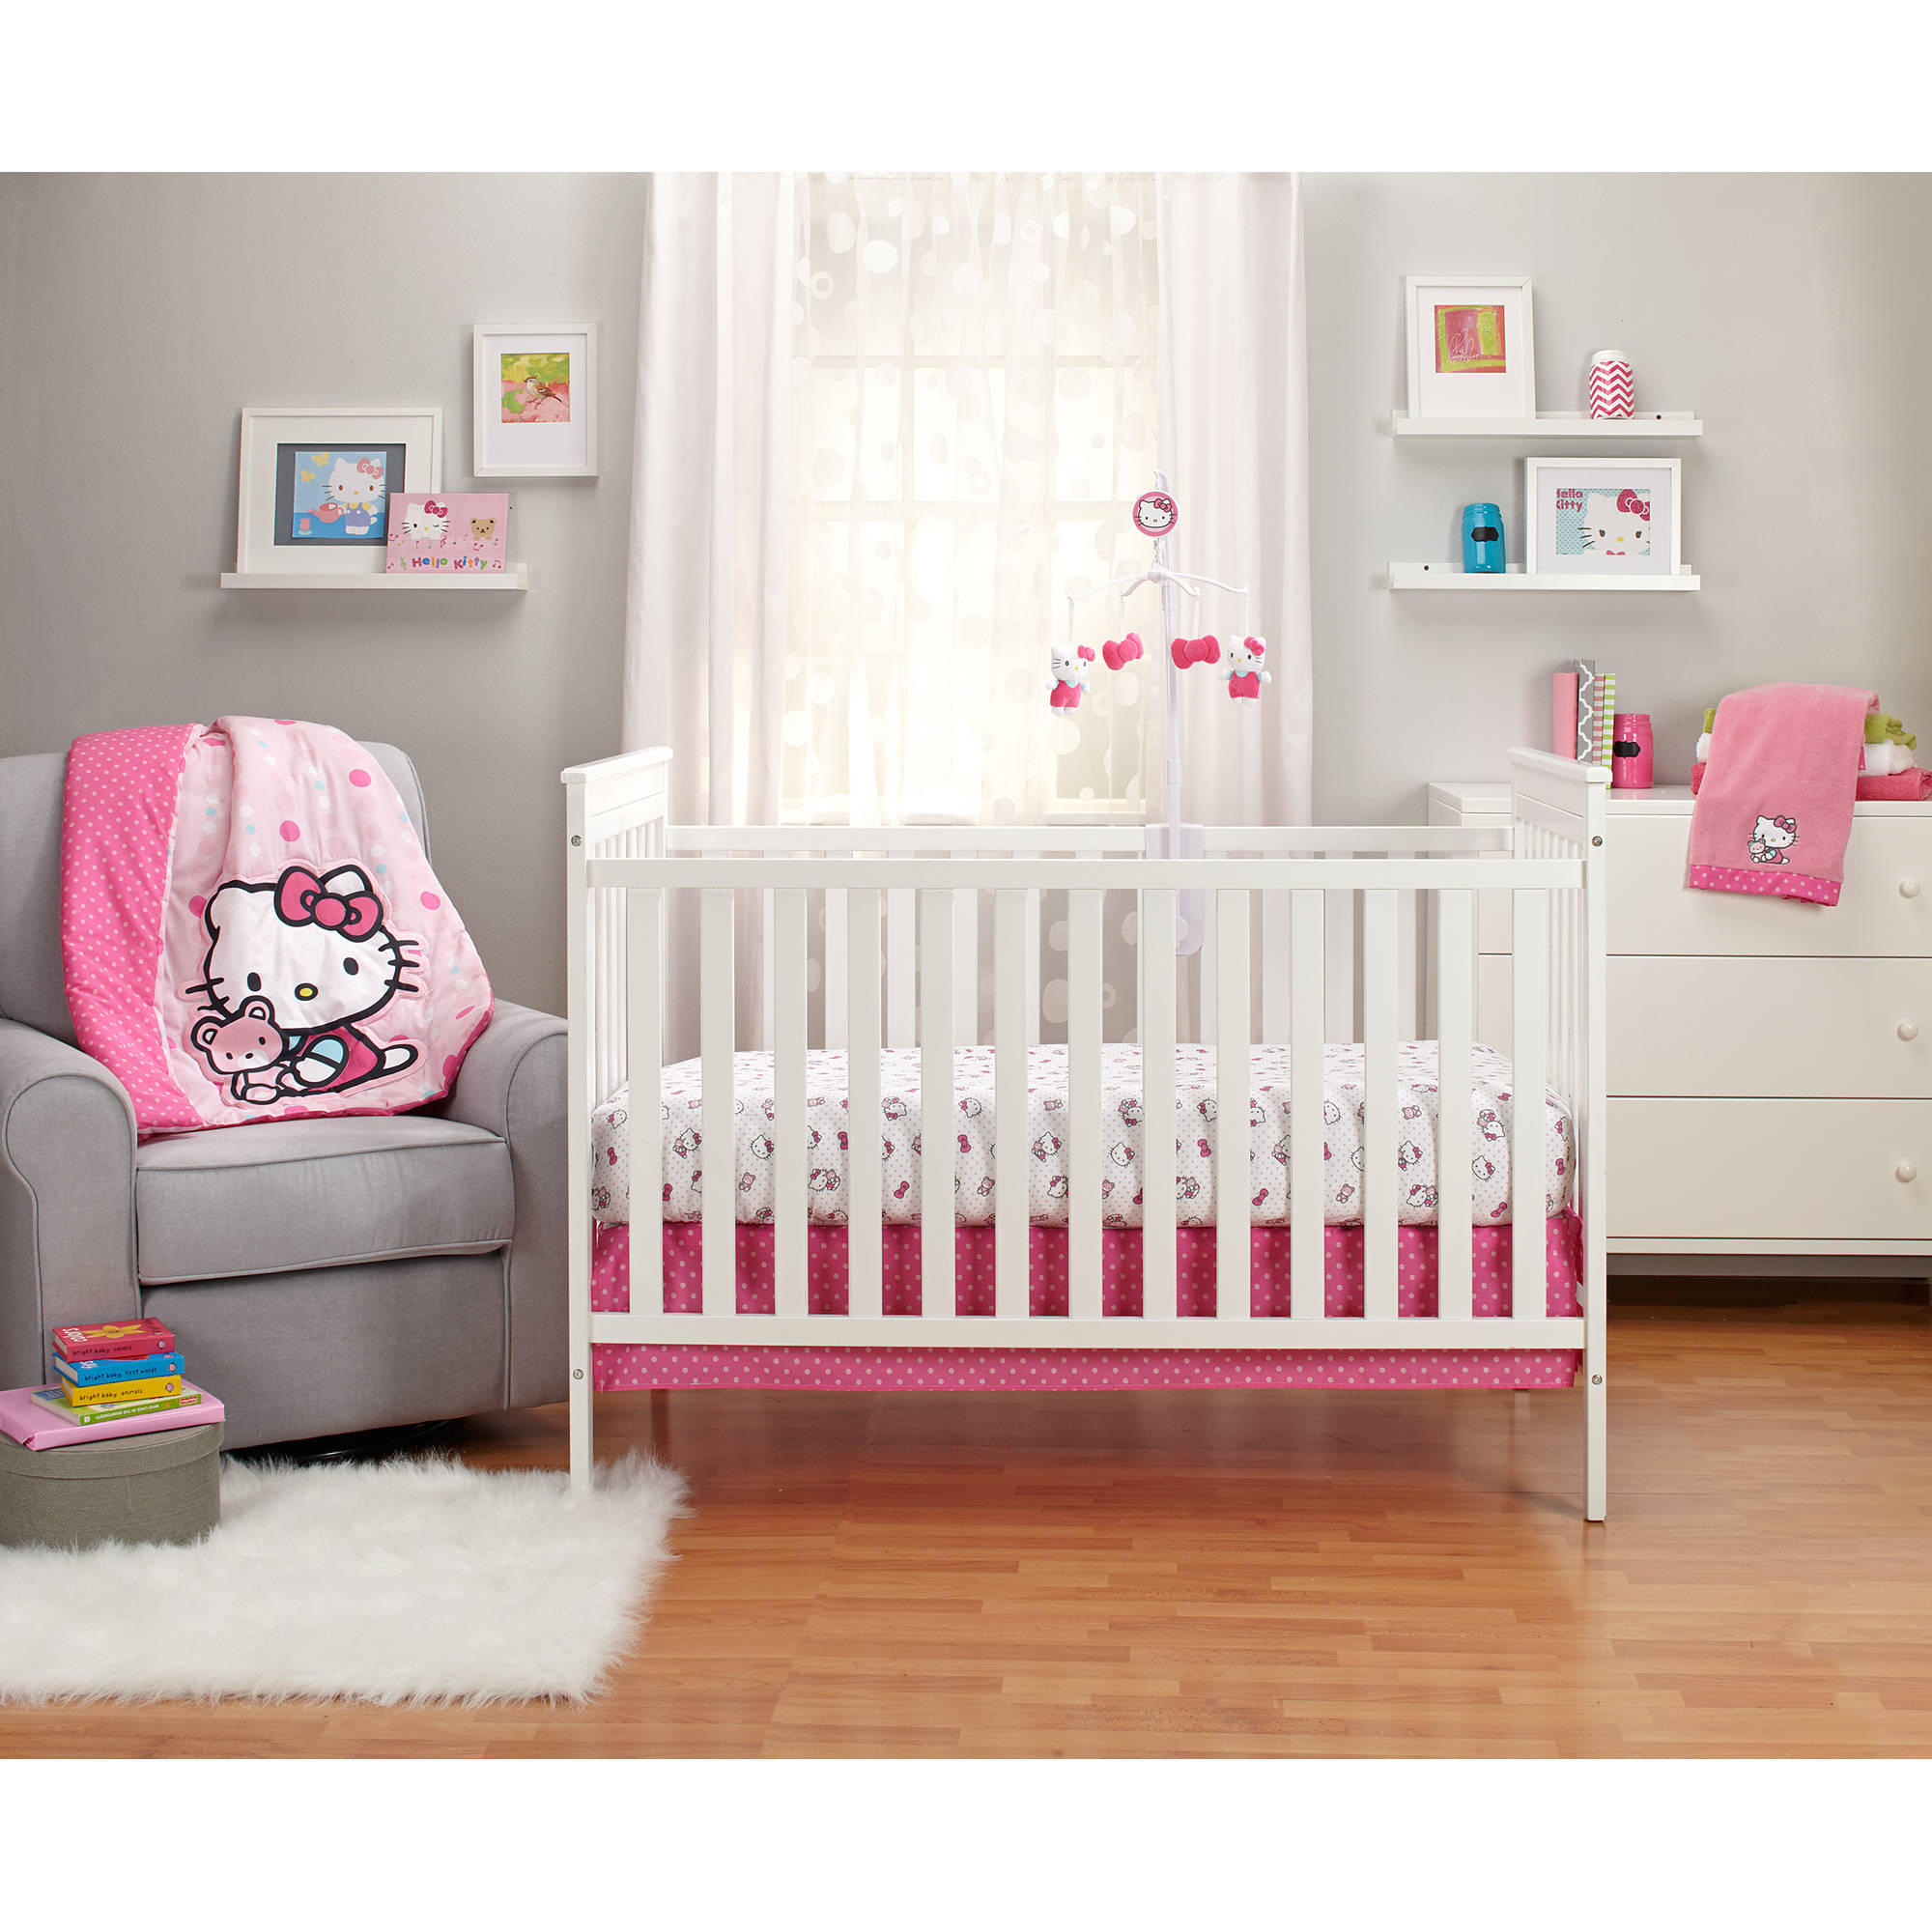 Hello Kitty Cute as a Button 3-Piece Crib Bedding Set